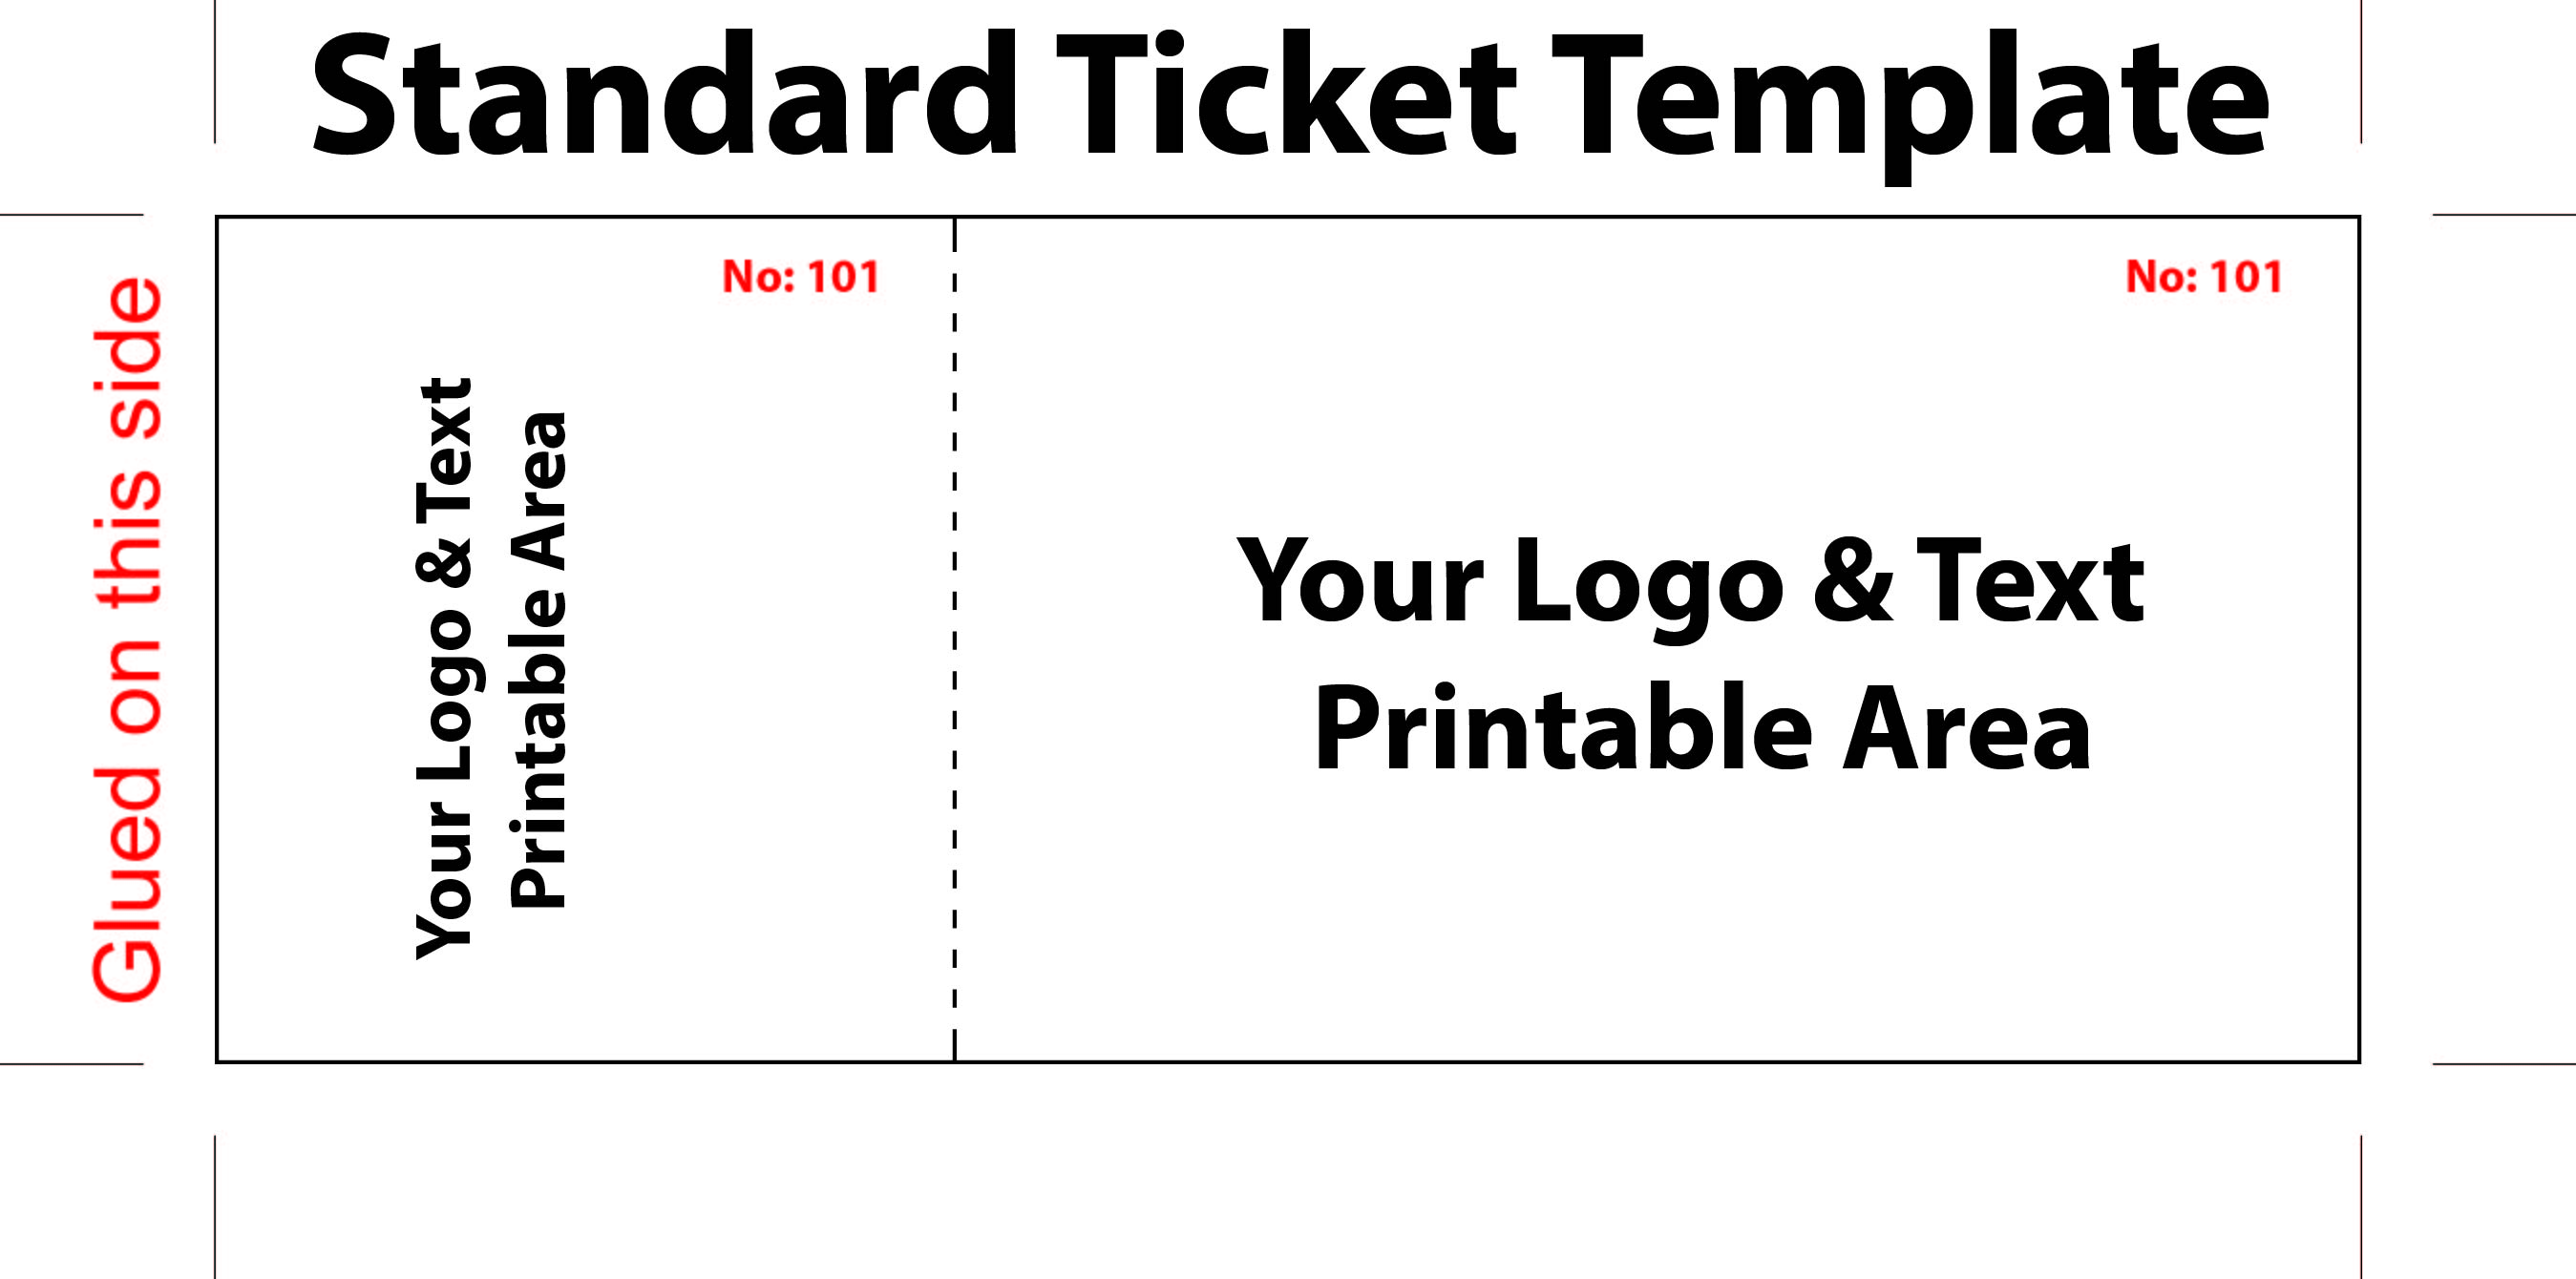 image about Free Printable Raffle Ticket Template Download called Cost-free Occasion Ticket Templates Templates Obtain